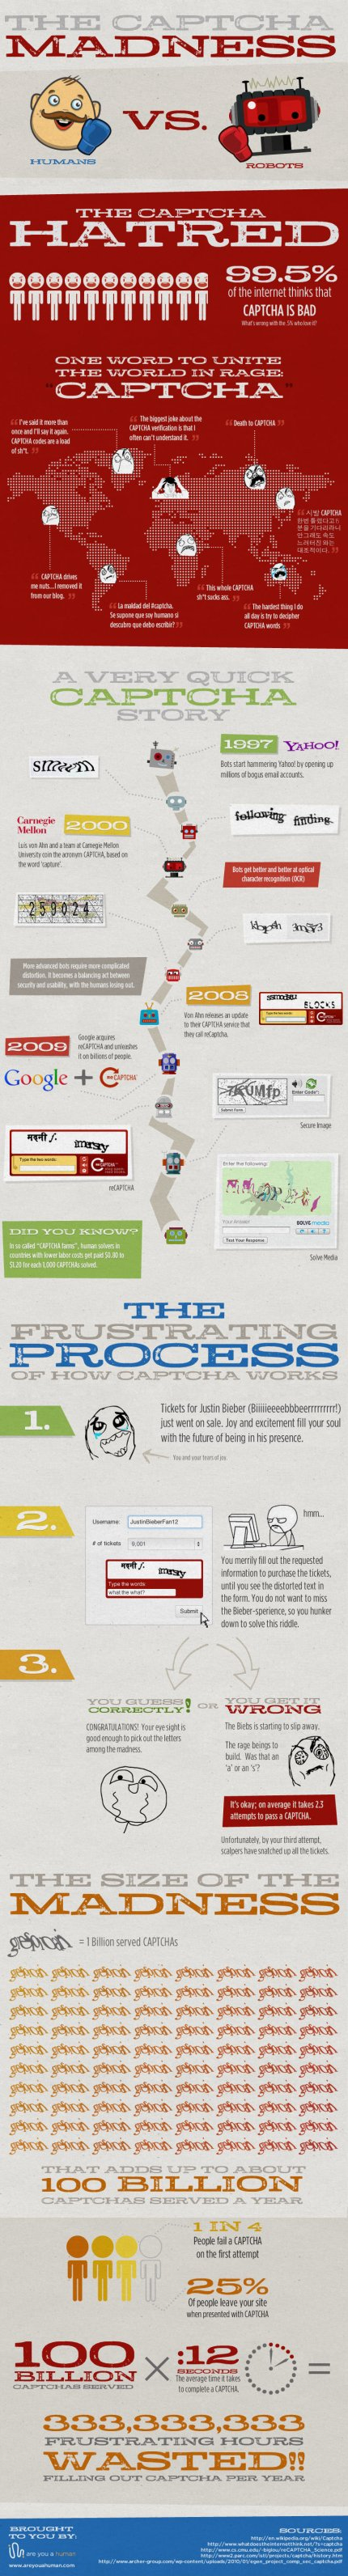 The-CAPTCHA-Madness-Infographic1